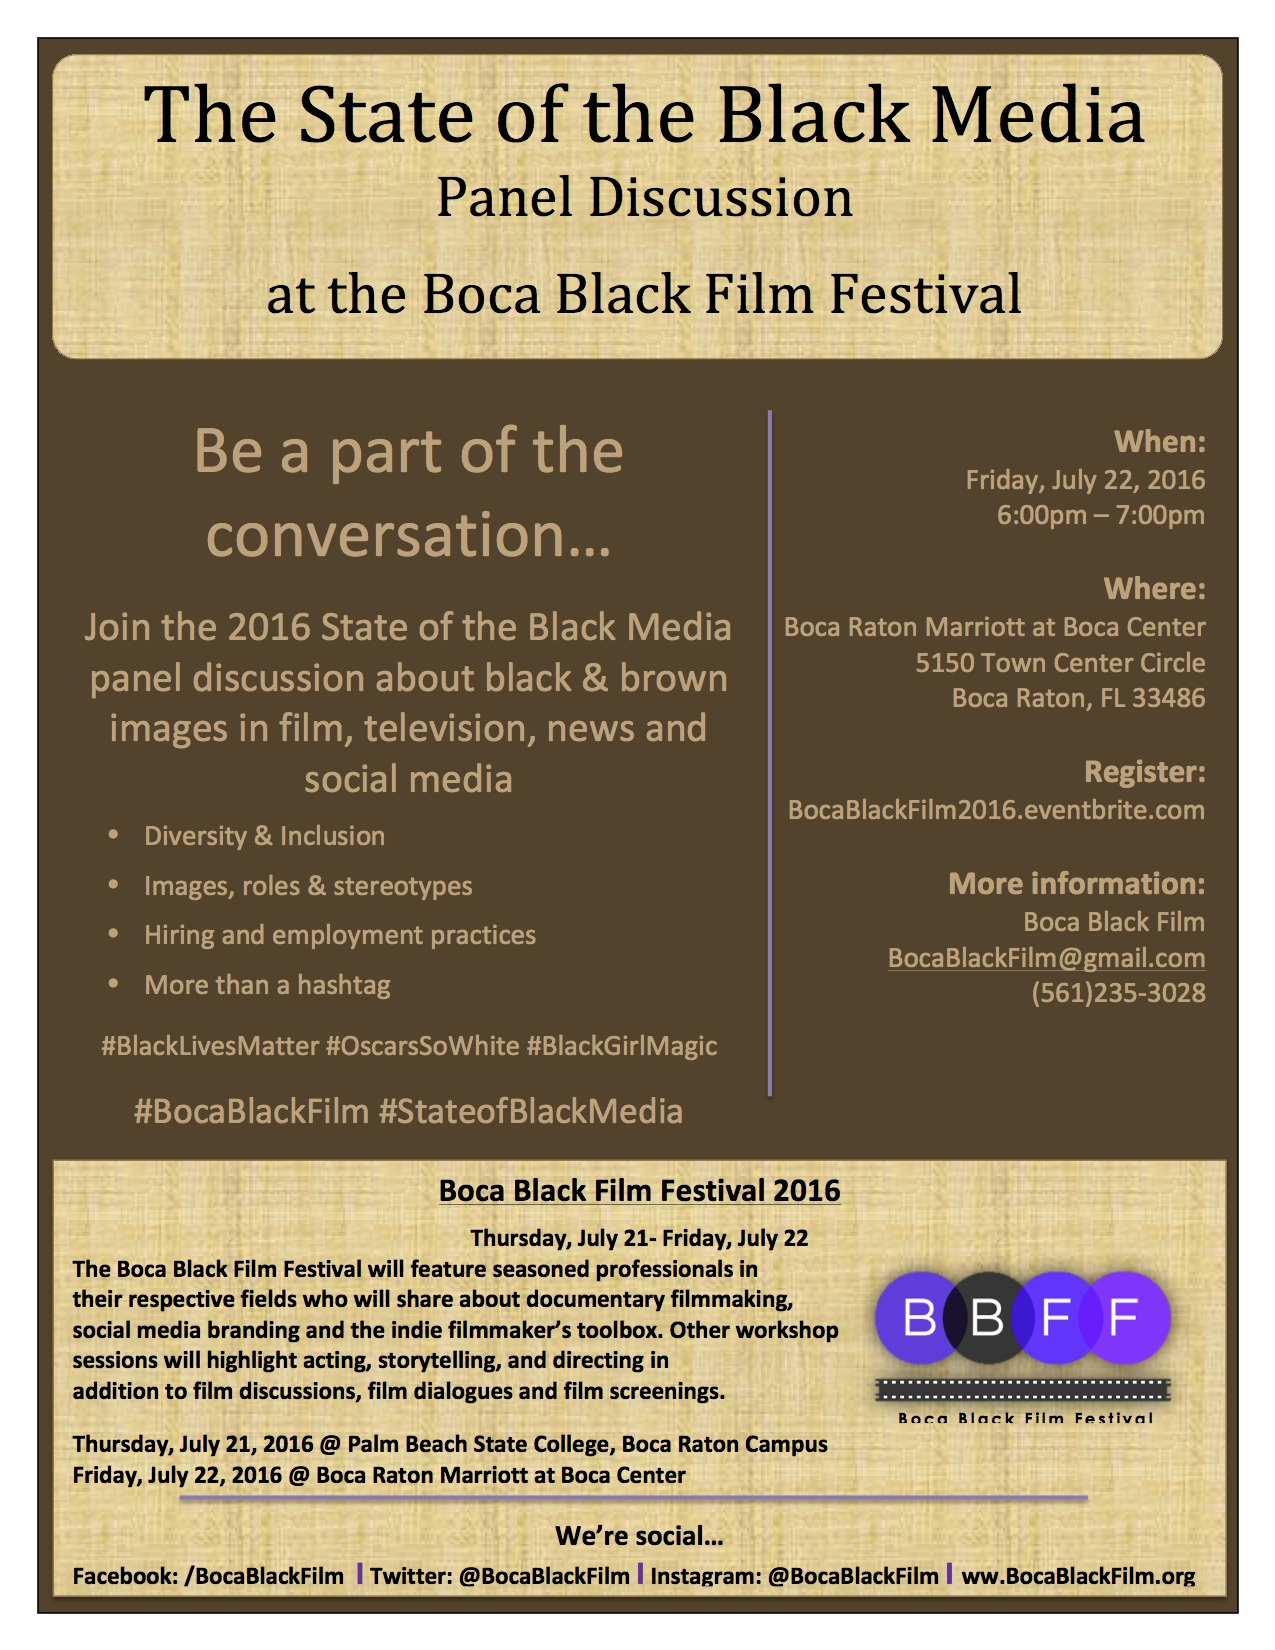 The State of the Black Media Panel Discussion